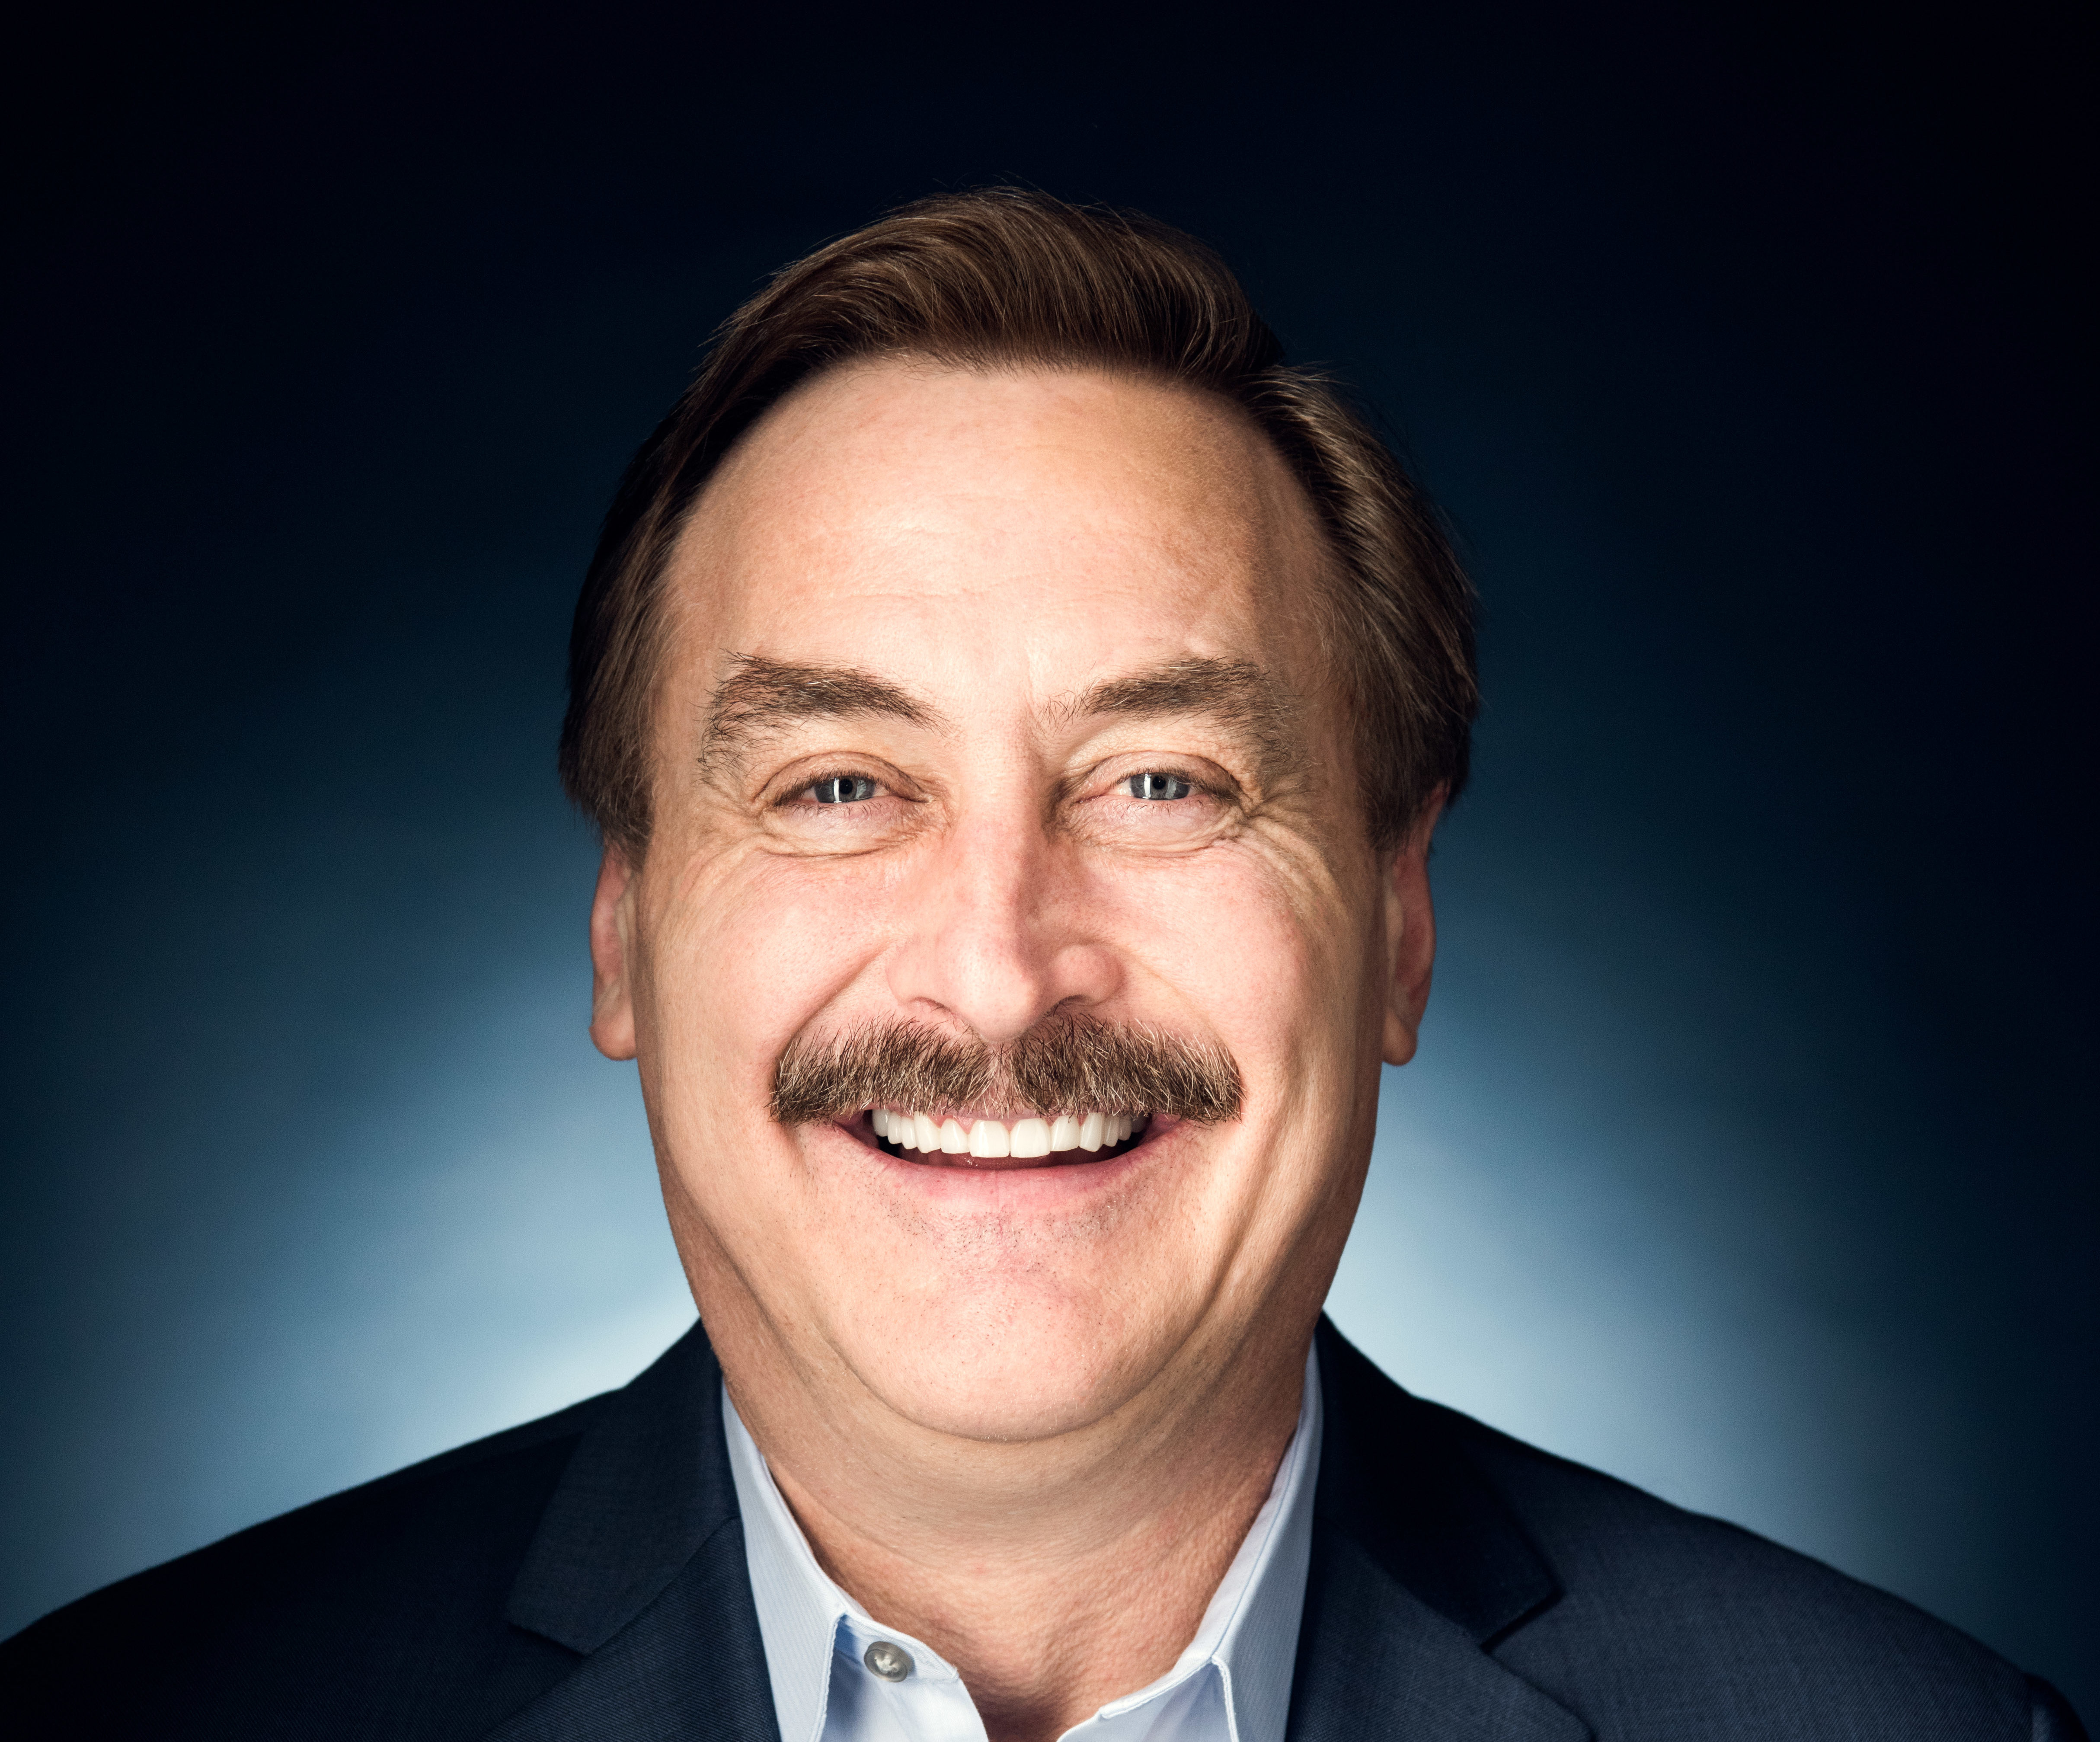 Mike Lindell founded MyPillow in 2004. Photo courtesy of MyPillow